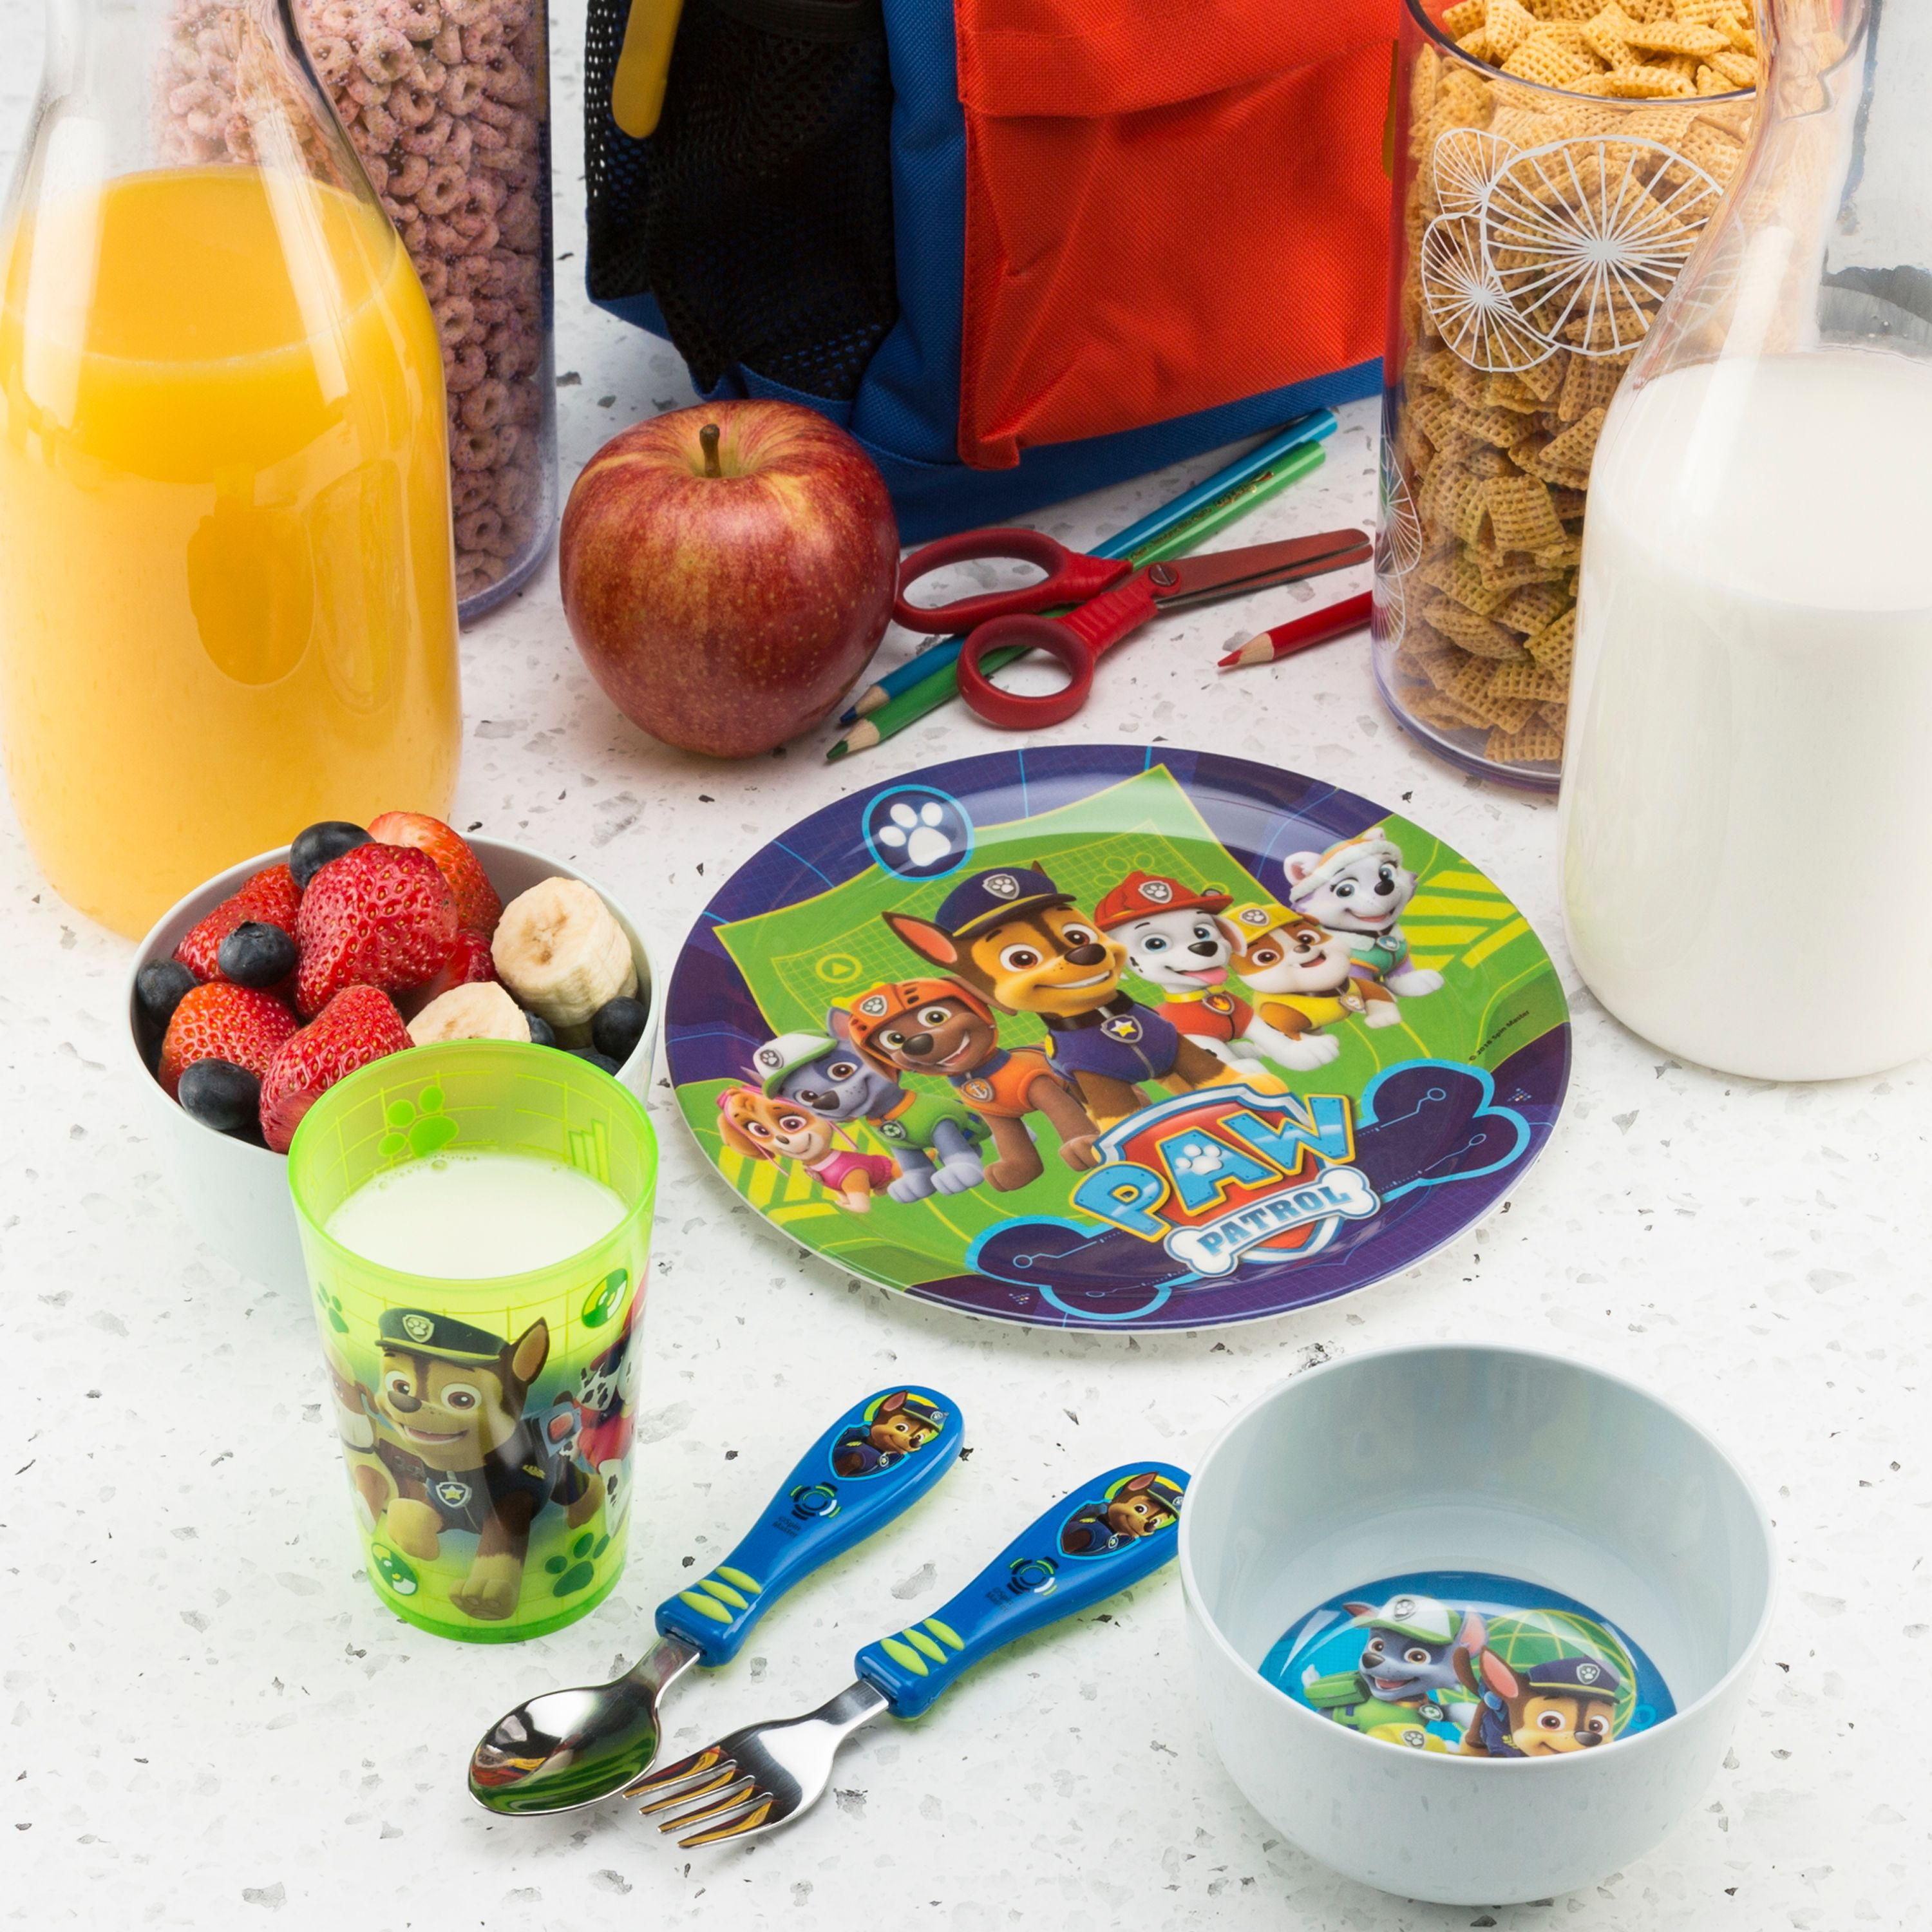 Zak Designs Paw Patrol Kids Cereal Bowl Tumbler and Spoon Set Skye